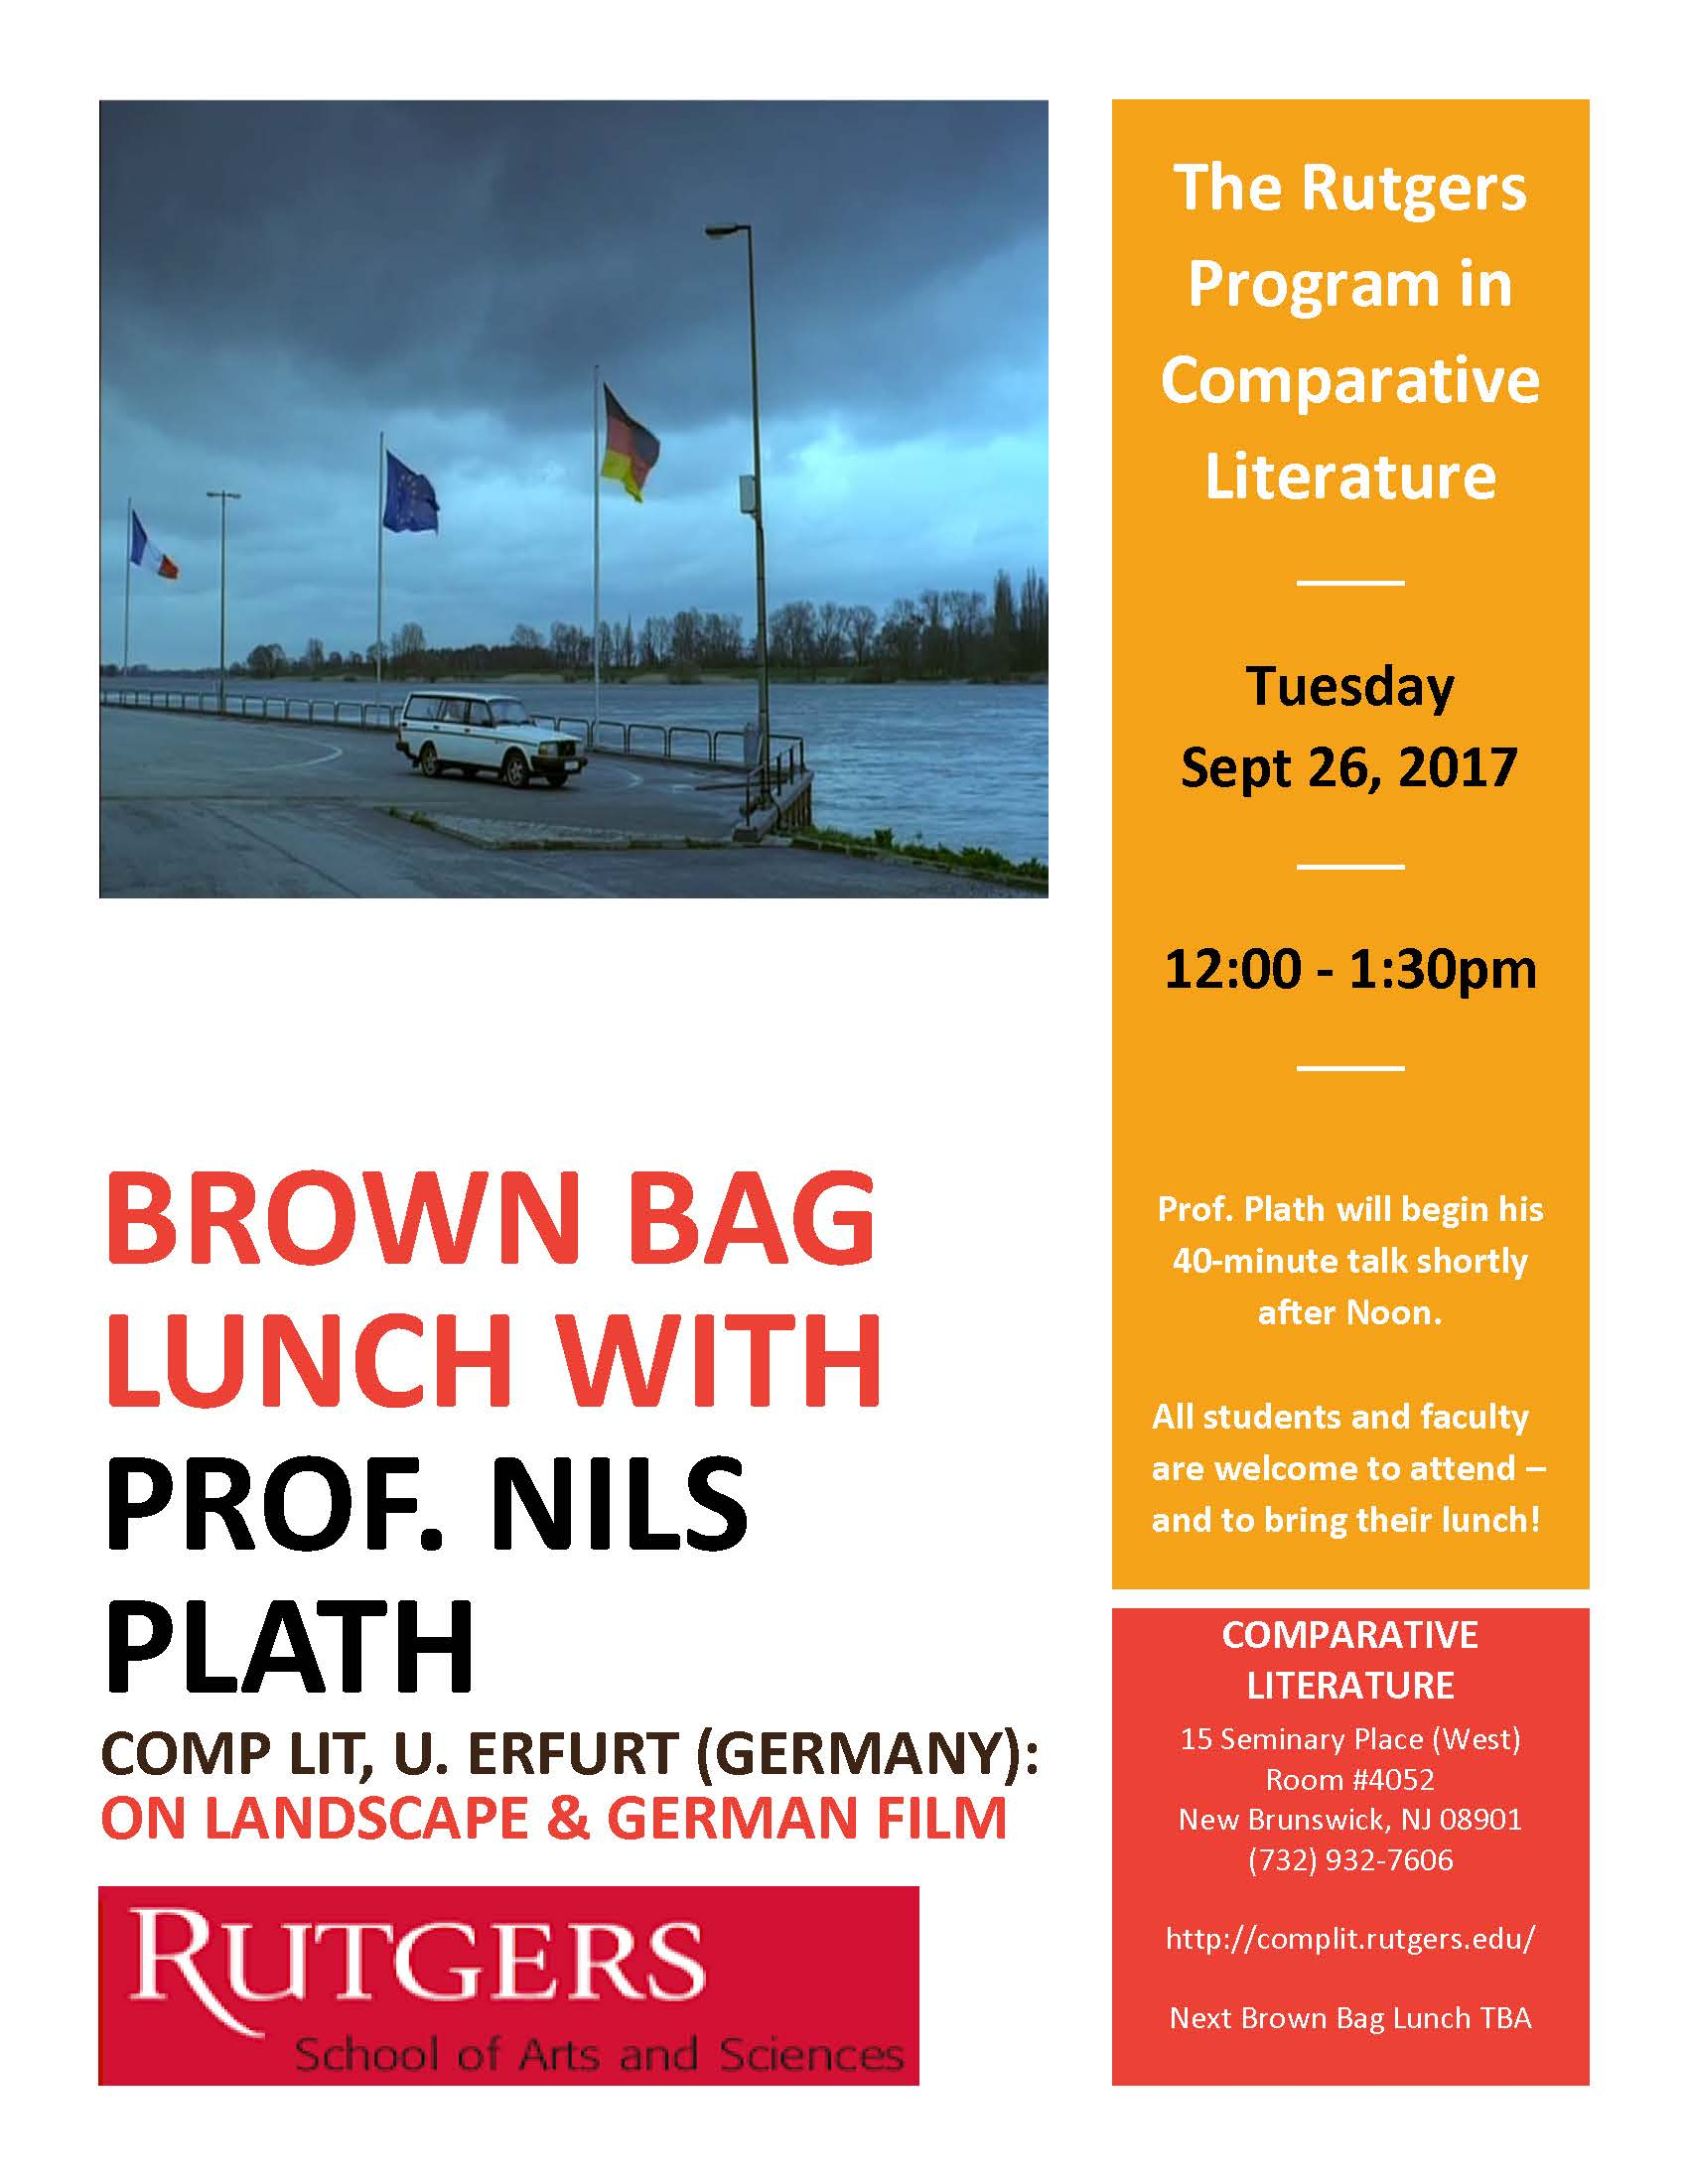 Nils Plath Brown Bag Lunch flyer.jpg